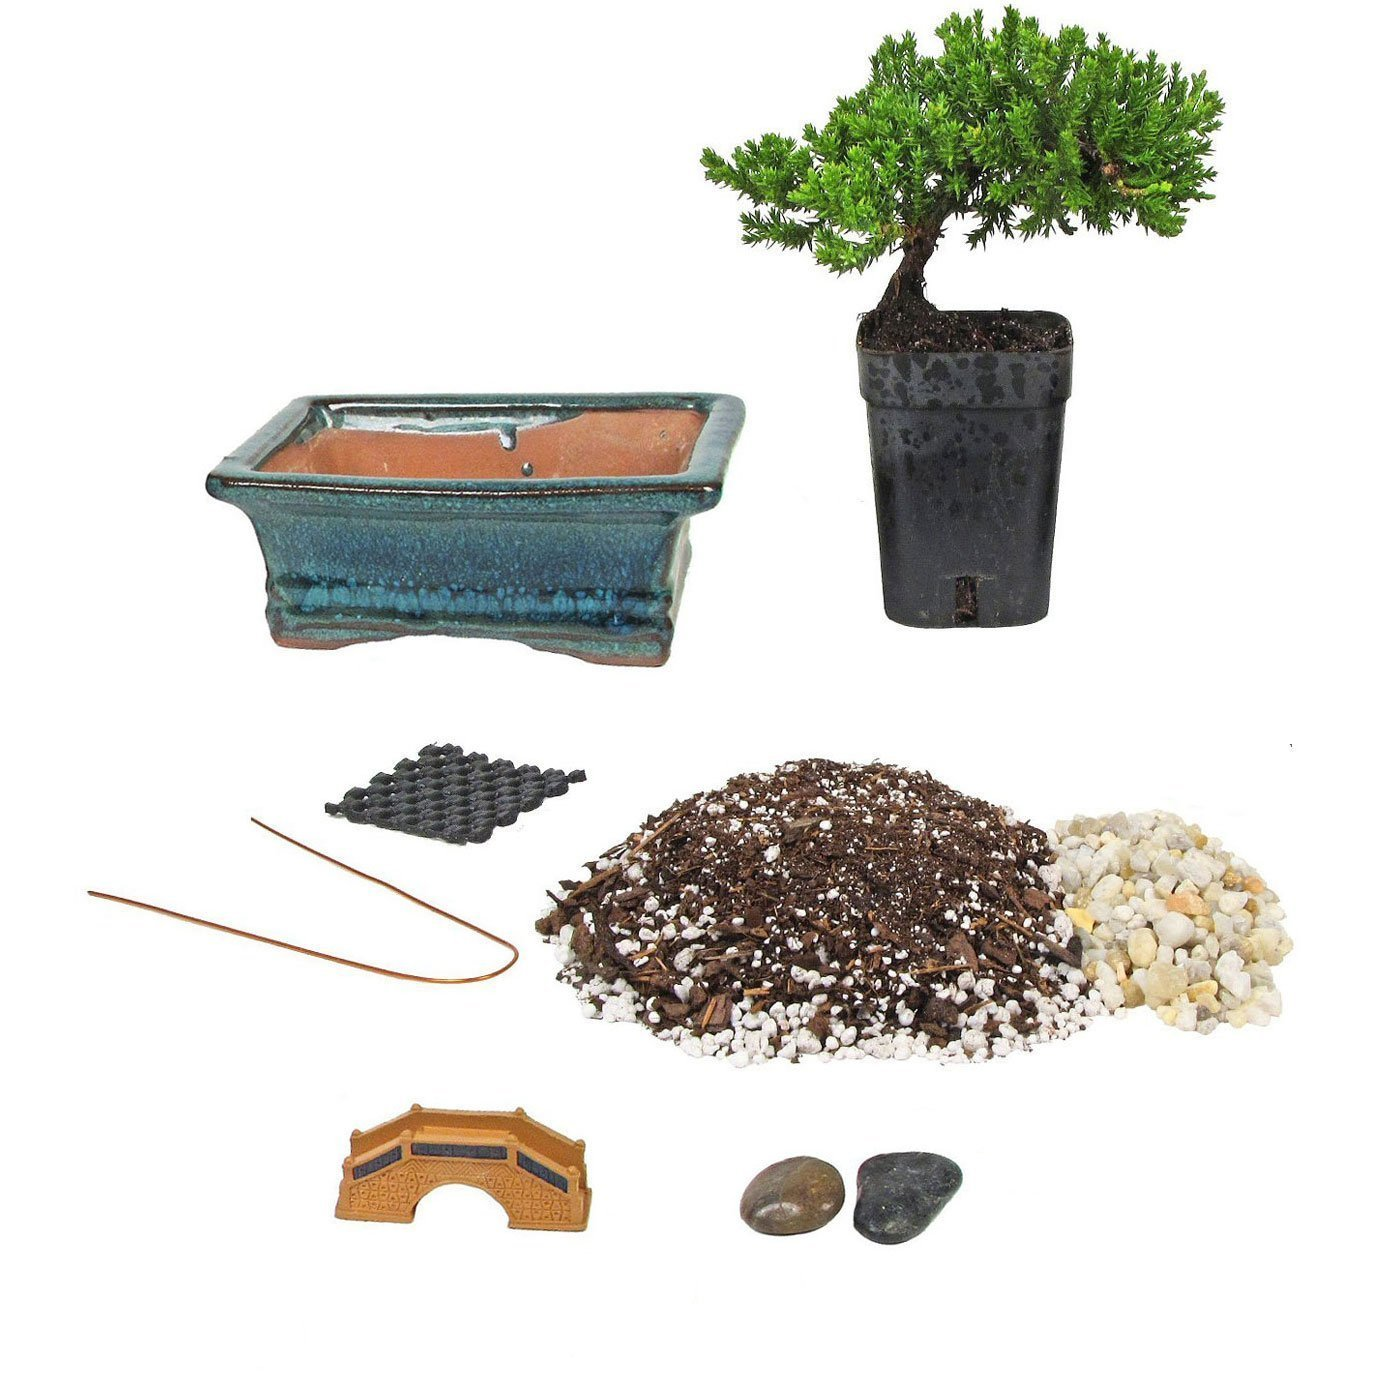 Bonsai Tree Starter Kit, Complete Do-It-Yourself Kit with 2 Year Old Petite Japanese Juniper from Jmbamboo by JM BAMBOO